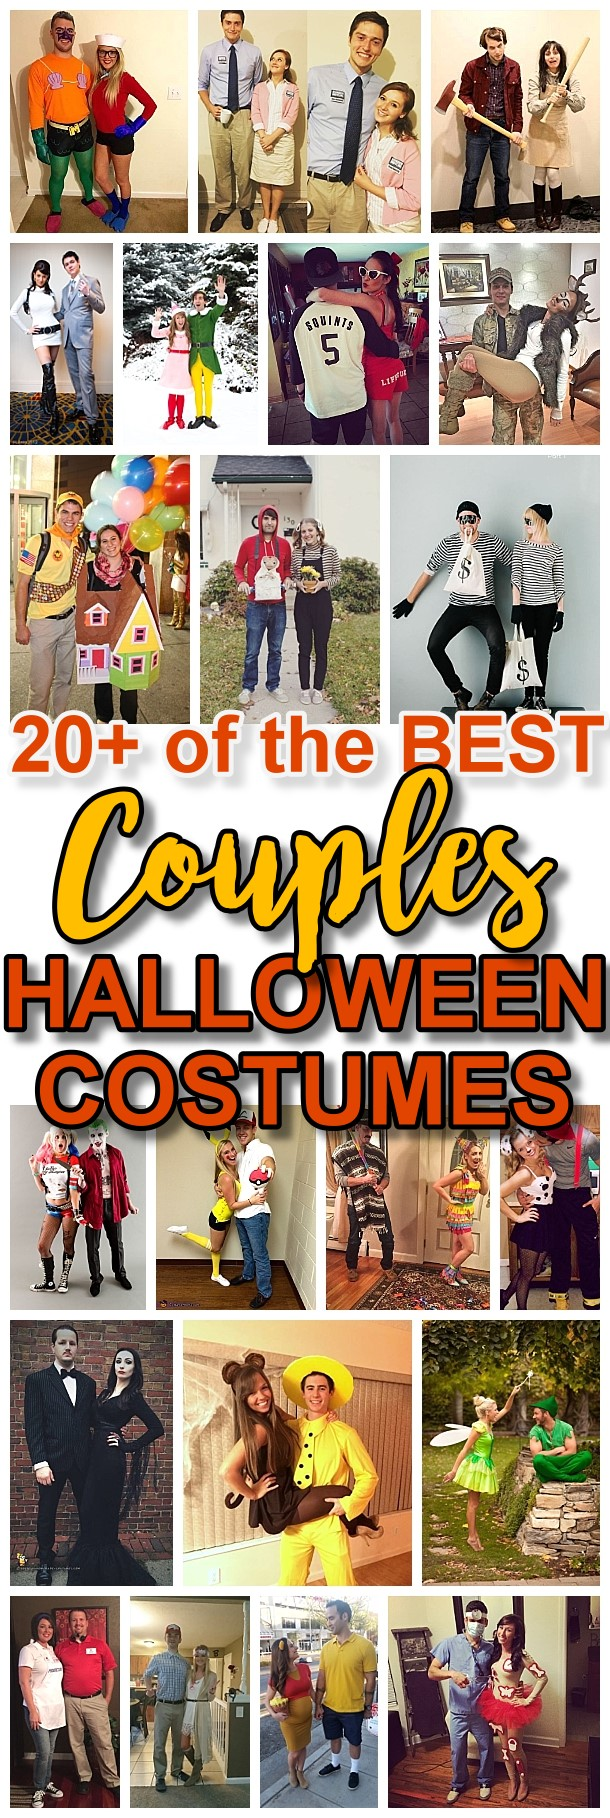 DIY Couples Halloween Costume Ideas - Do it Yourself Homemade Couples Costume Ideas that are SO FUN to make and are sure to be a big hit at Halloween Parties - You are so going to win the Costume Contest!